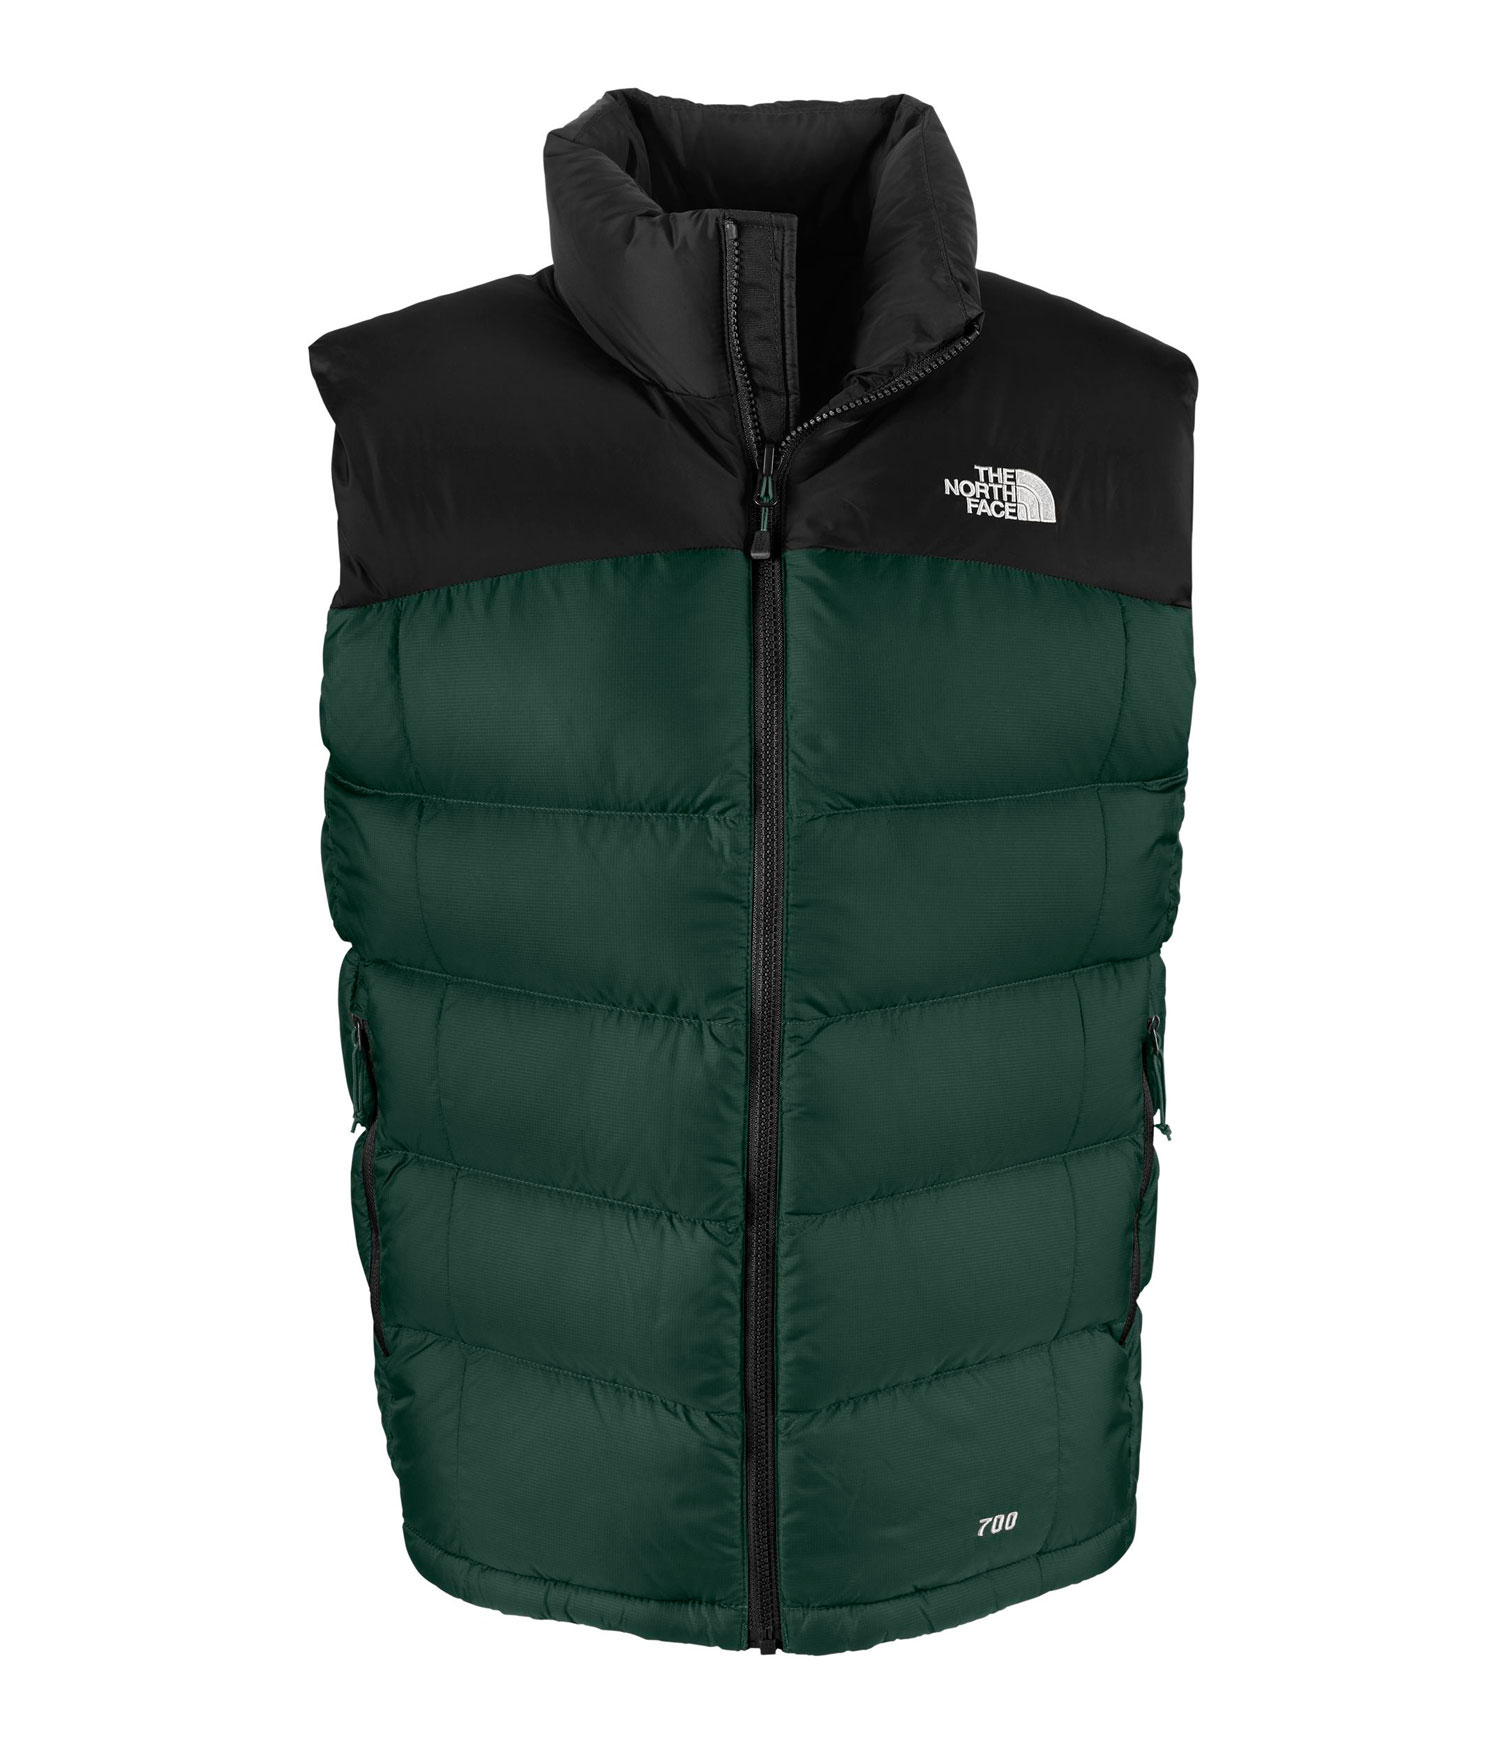 "Key Features of The North Face Neptse 2 Vest: Avg Weight: 500 g (17.64 oz) Center Back: 27"" Fabric: body: 50D 64 g/m2 (1.9 oz/yd2) mini-ripstop weave nylon abrasion: 50D 64 g/m2 (1.9 oz/yd2) plain weave nylon with DWR insulation: 700 fill goose down Sleeveless version of the classic, high loft down jacket that delivers plush warmth in harsh cold. Standard fit Zip-in compatible Double-layer taffeta on shoulders Stows in hand pocket Two hand pockets Hem cinch-cord - $96.95"